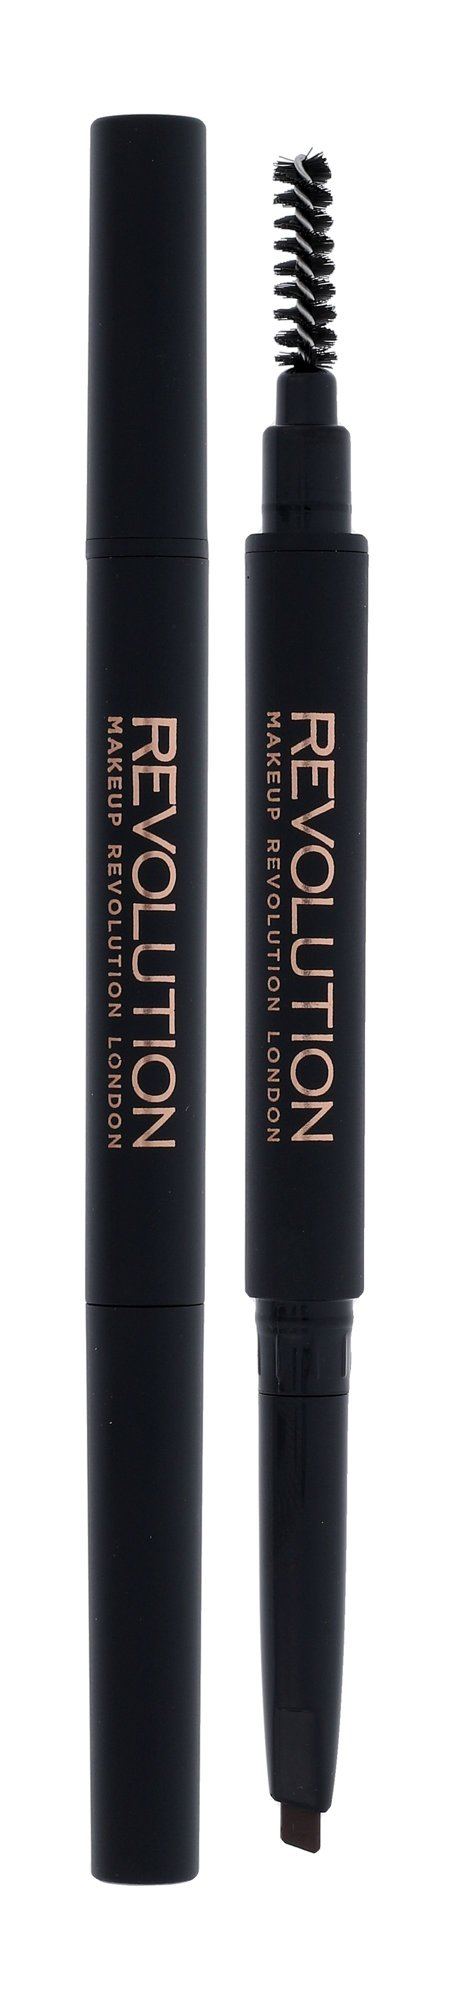 Makeup Revolution London Duo Brow Definer Cosmetic 0,15ml Light Brown